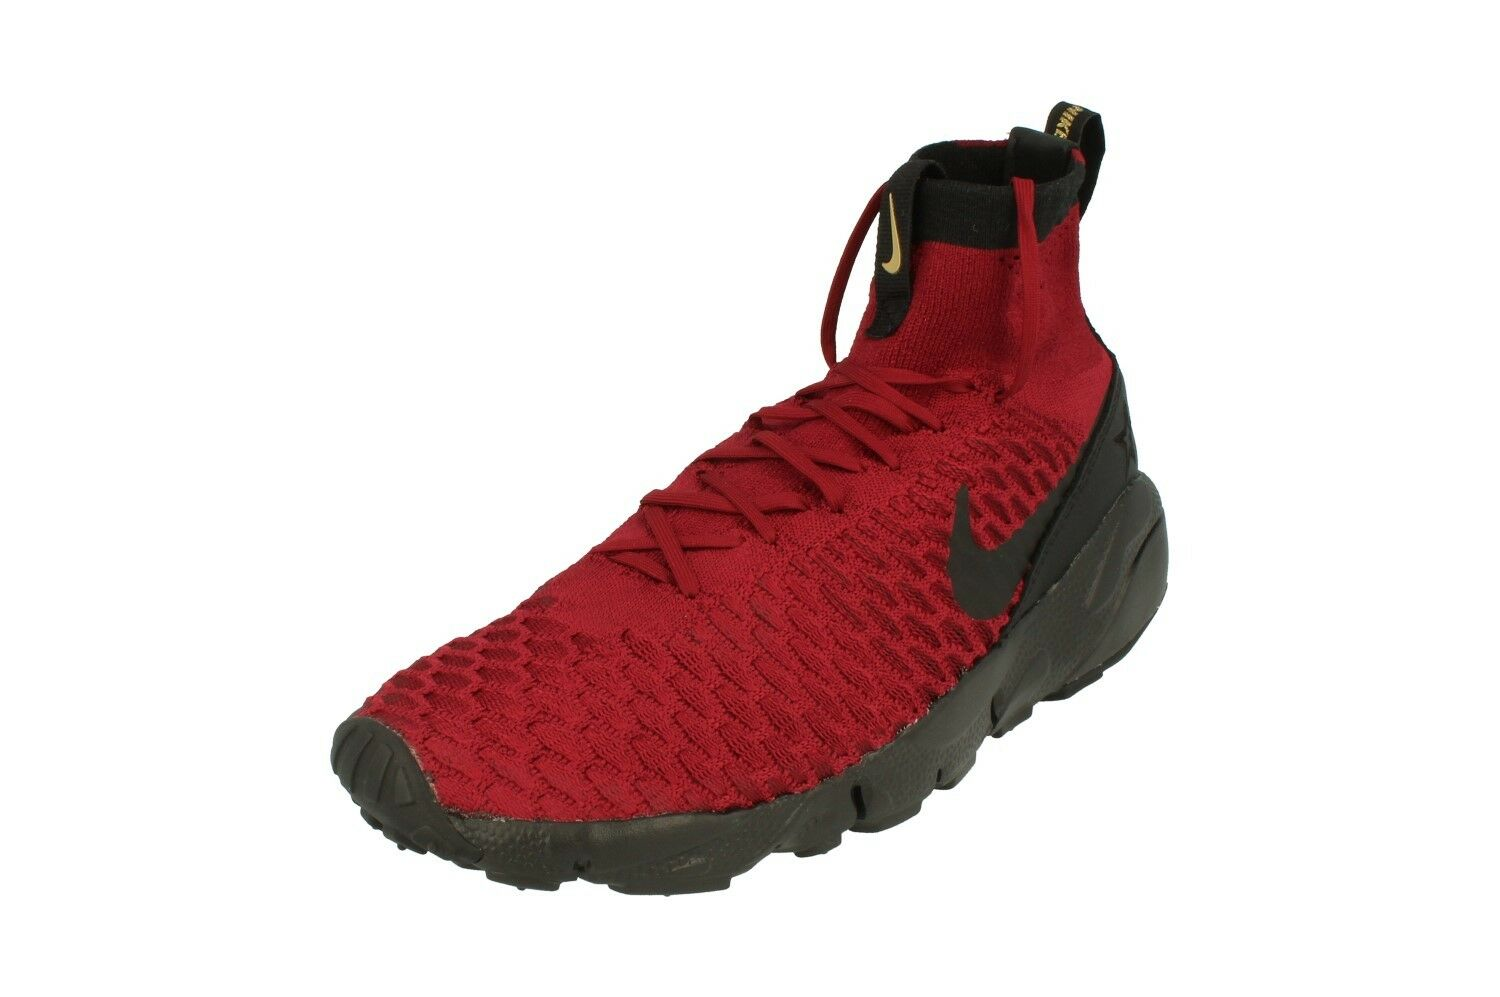 Nike Footscape Magista Fk Hi Fc Para Hombre Air Hi Fk Top tenis 830Tenis Zapatos  600 26b420